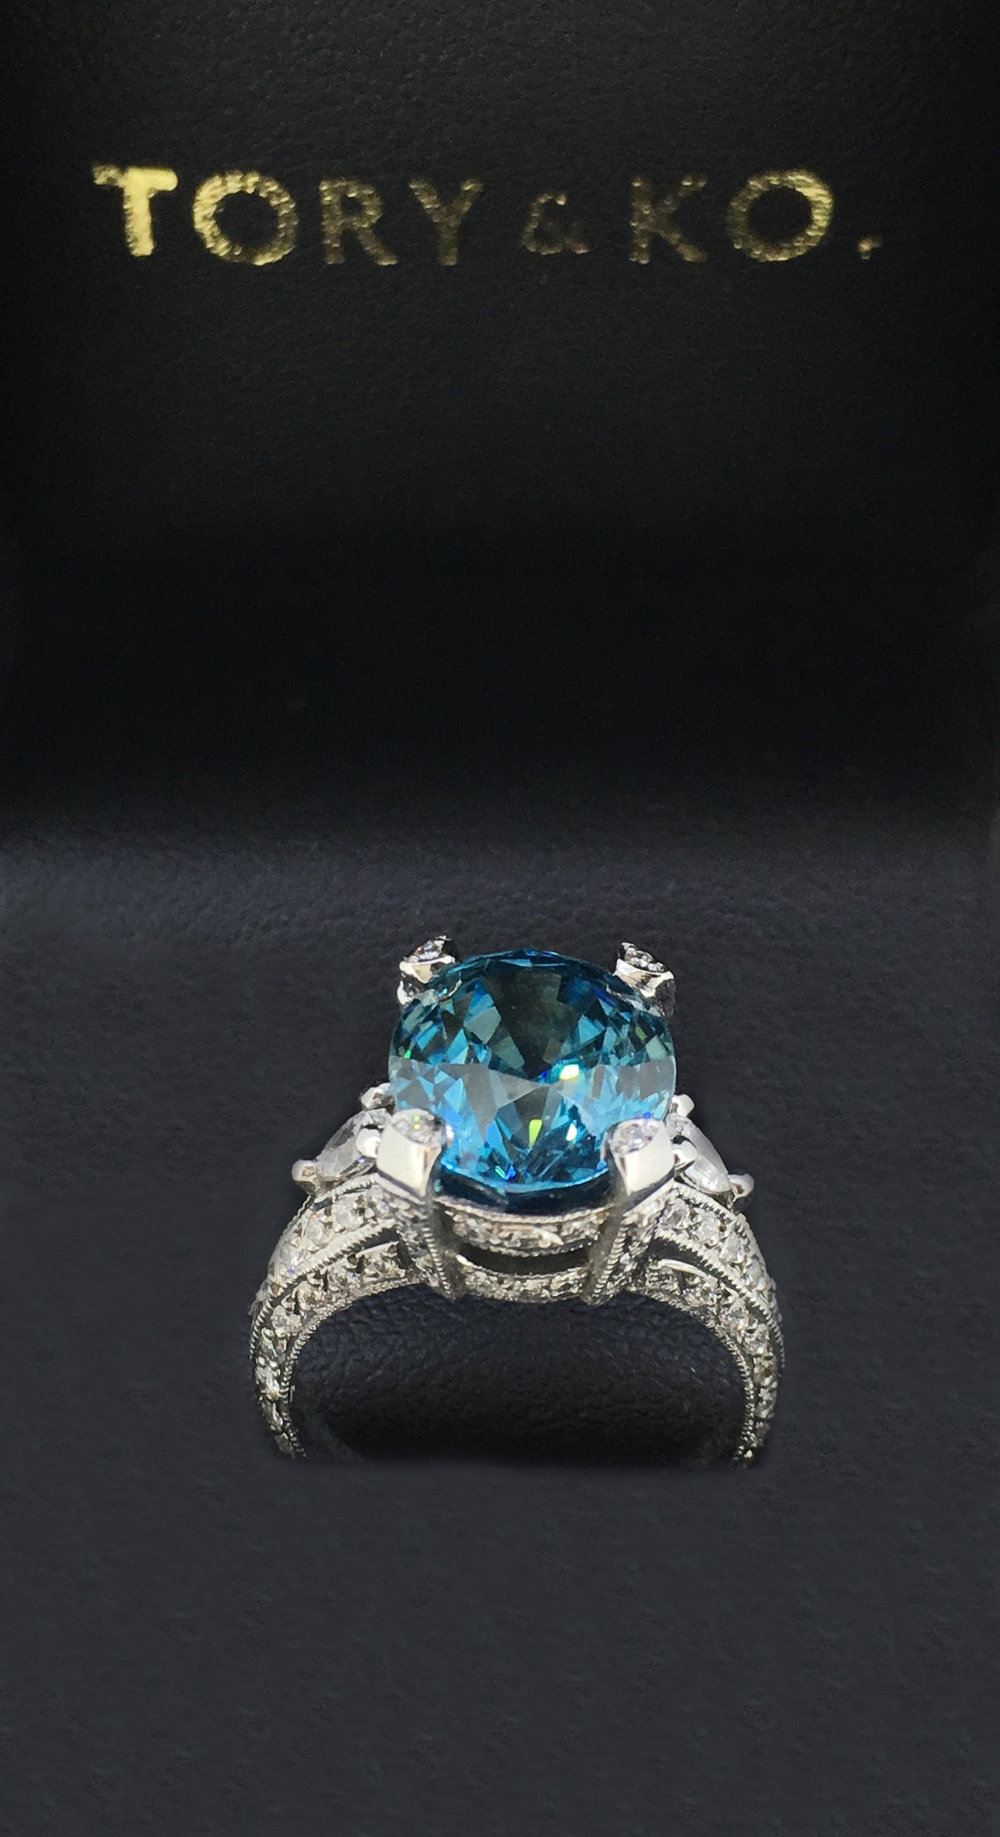 Bespoke Blue Zircon & Diamond Ring